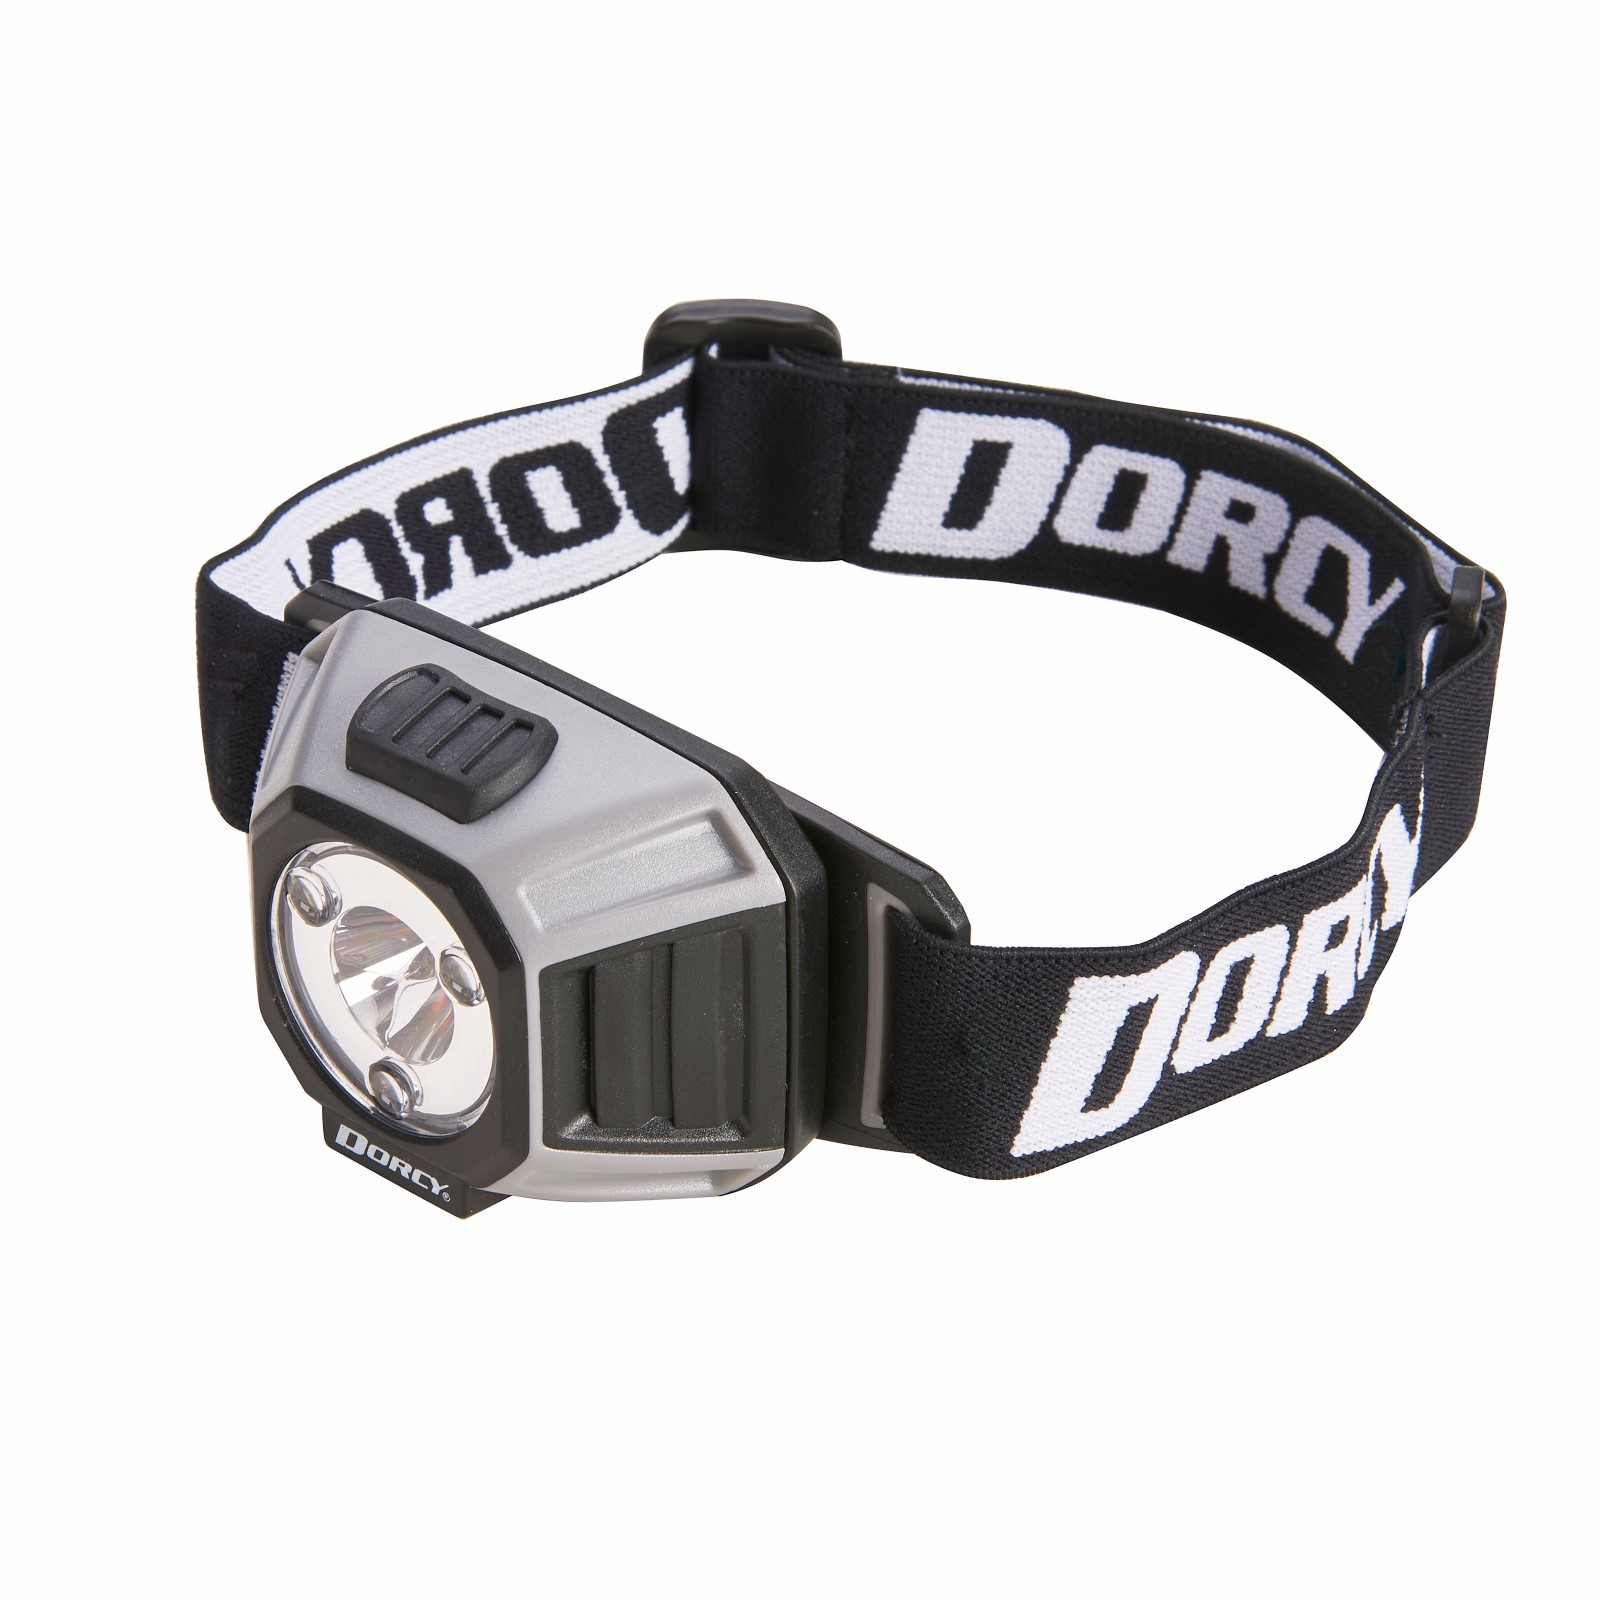 Industrial Multifunction LED Headlamp